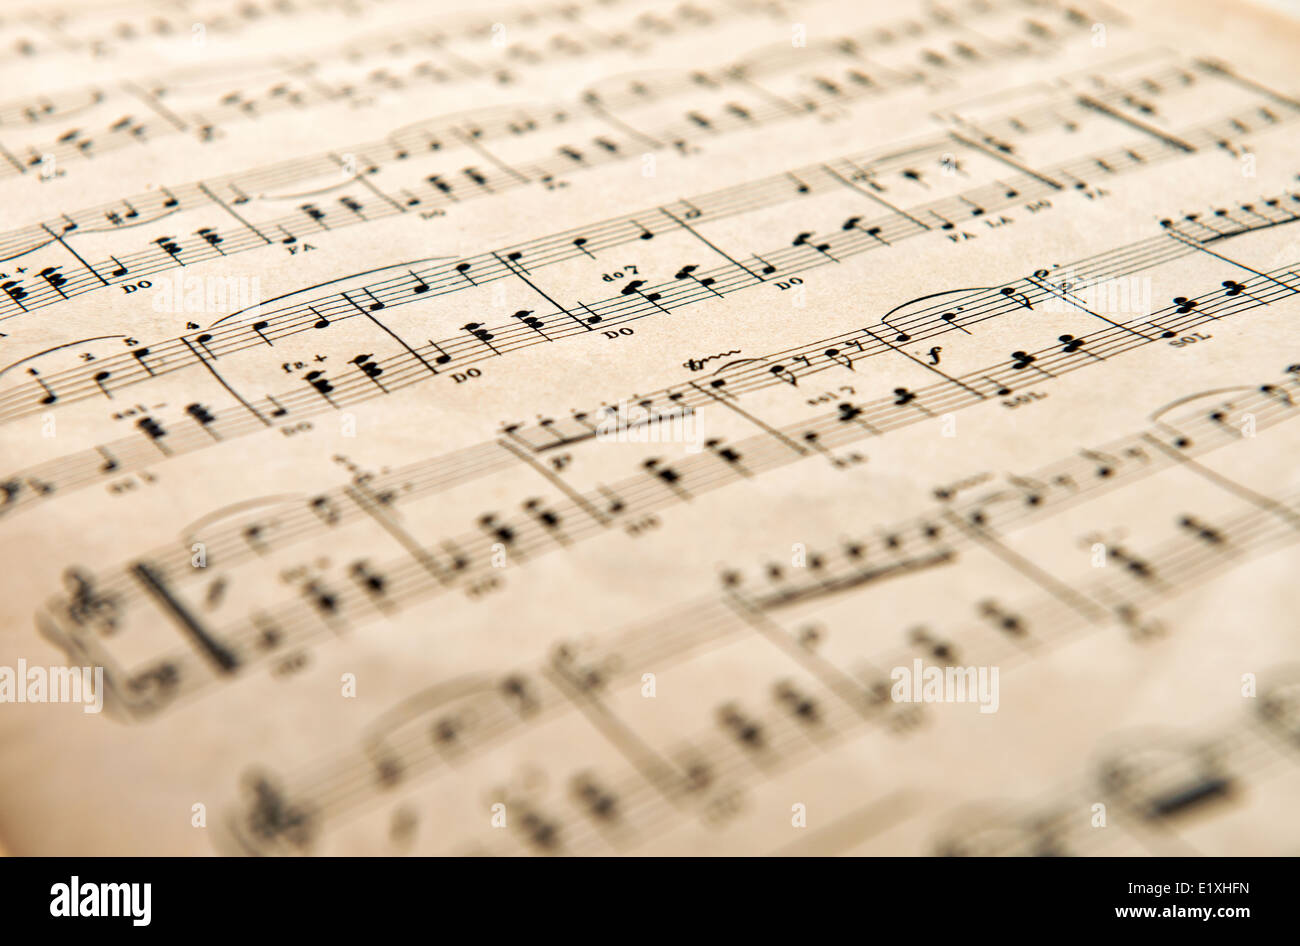 Low angle view of an old yellowed aged music score - Stock Image